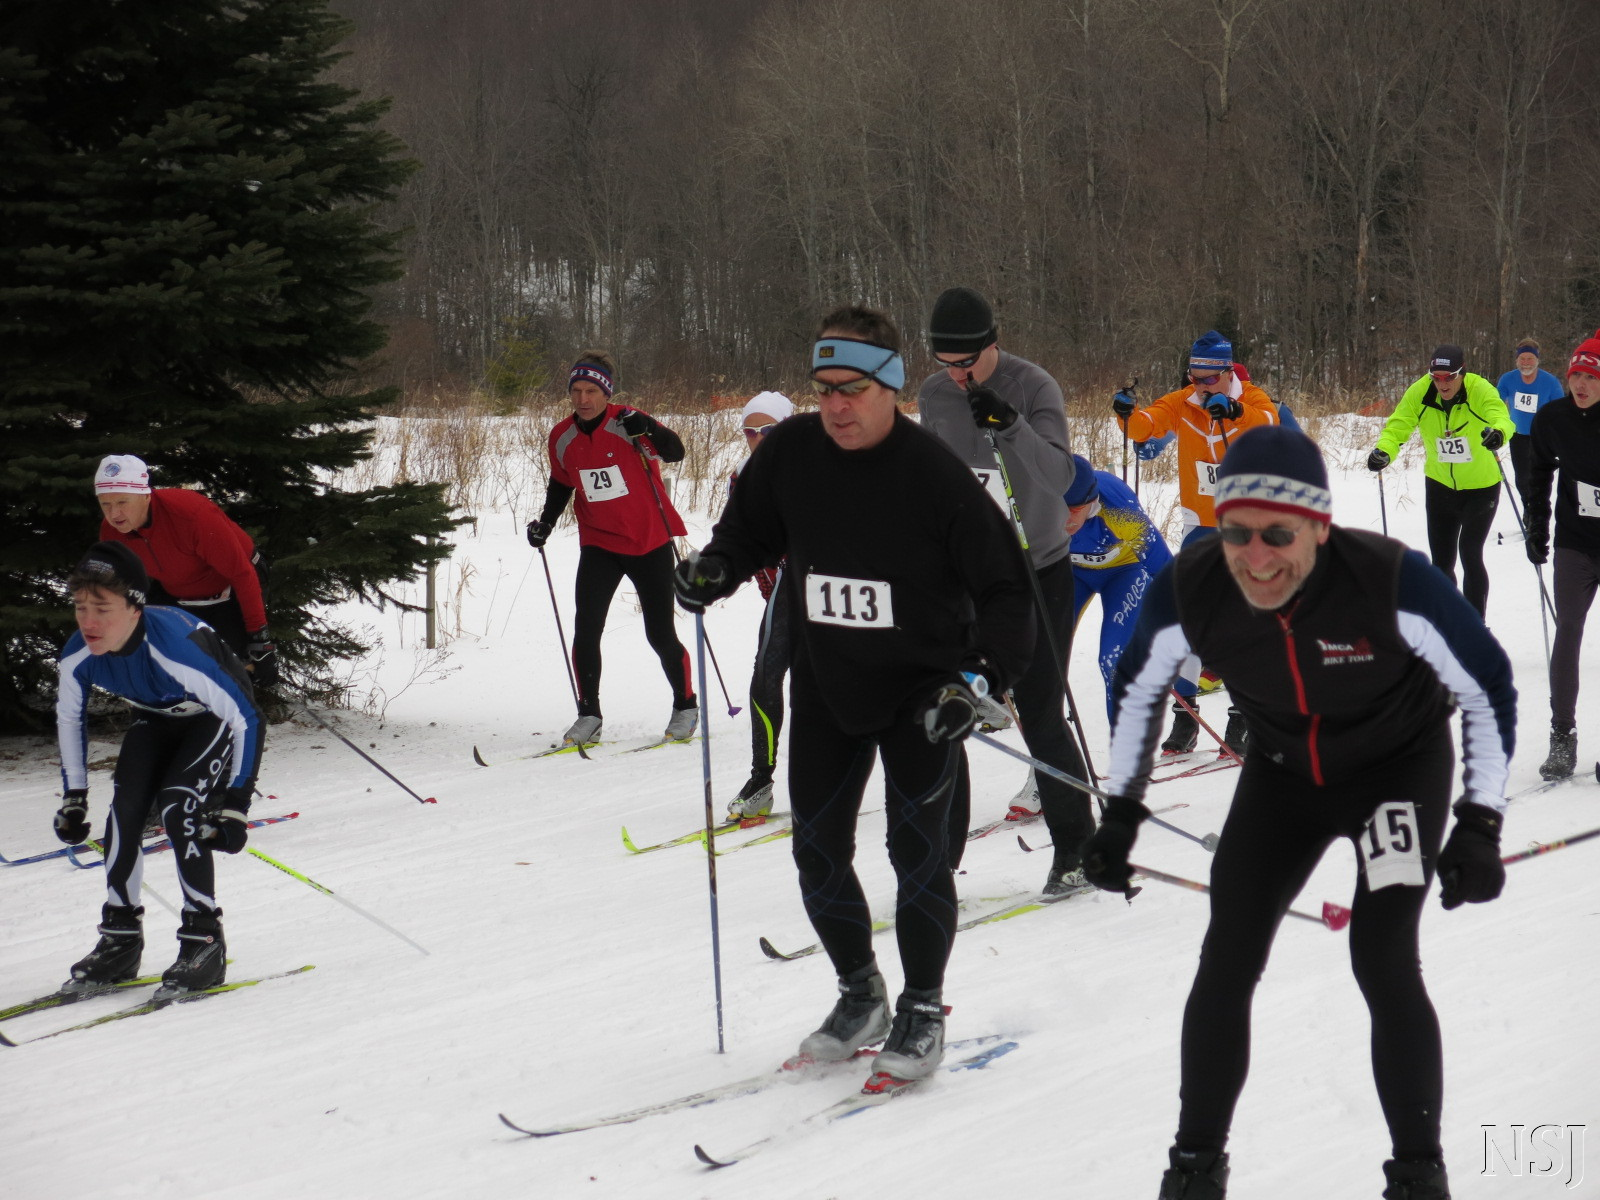 "PA Nordic Championship - Classic - Wilderness Lodge - <span class=""date-display-single"" property=""dc:date"" datatype=""xsd:dateTime"" content=""2014-02-01T00:00:00-05:00"">01 Feb 2014</span> - Naomi Jarvis"